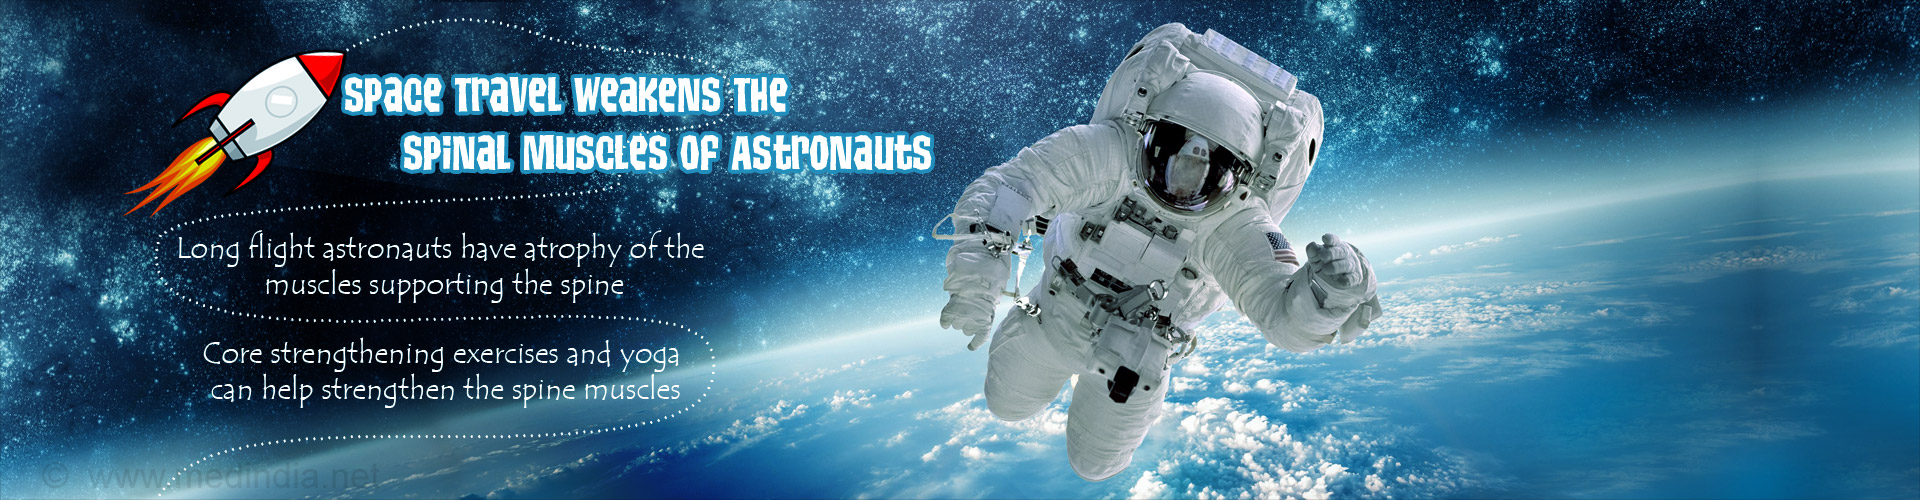 Long Duration In Spaceflights Affects The Spine Of Astronauts - NASA Study